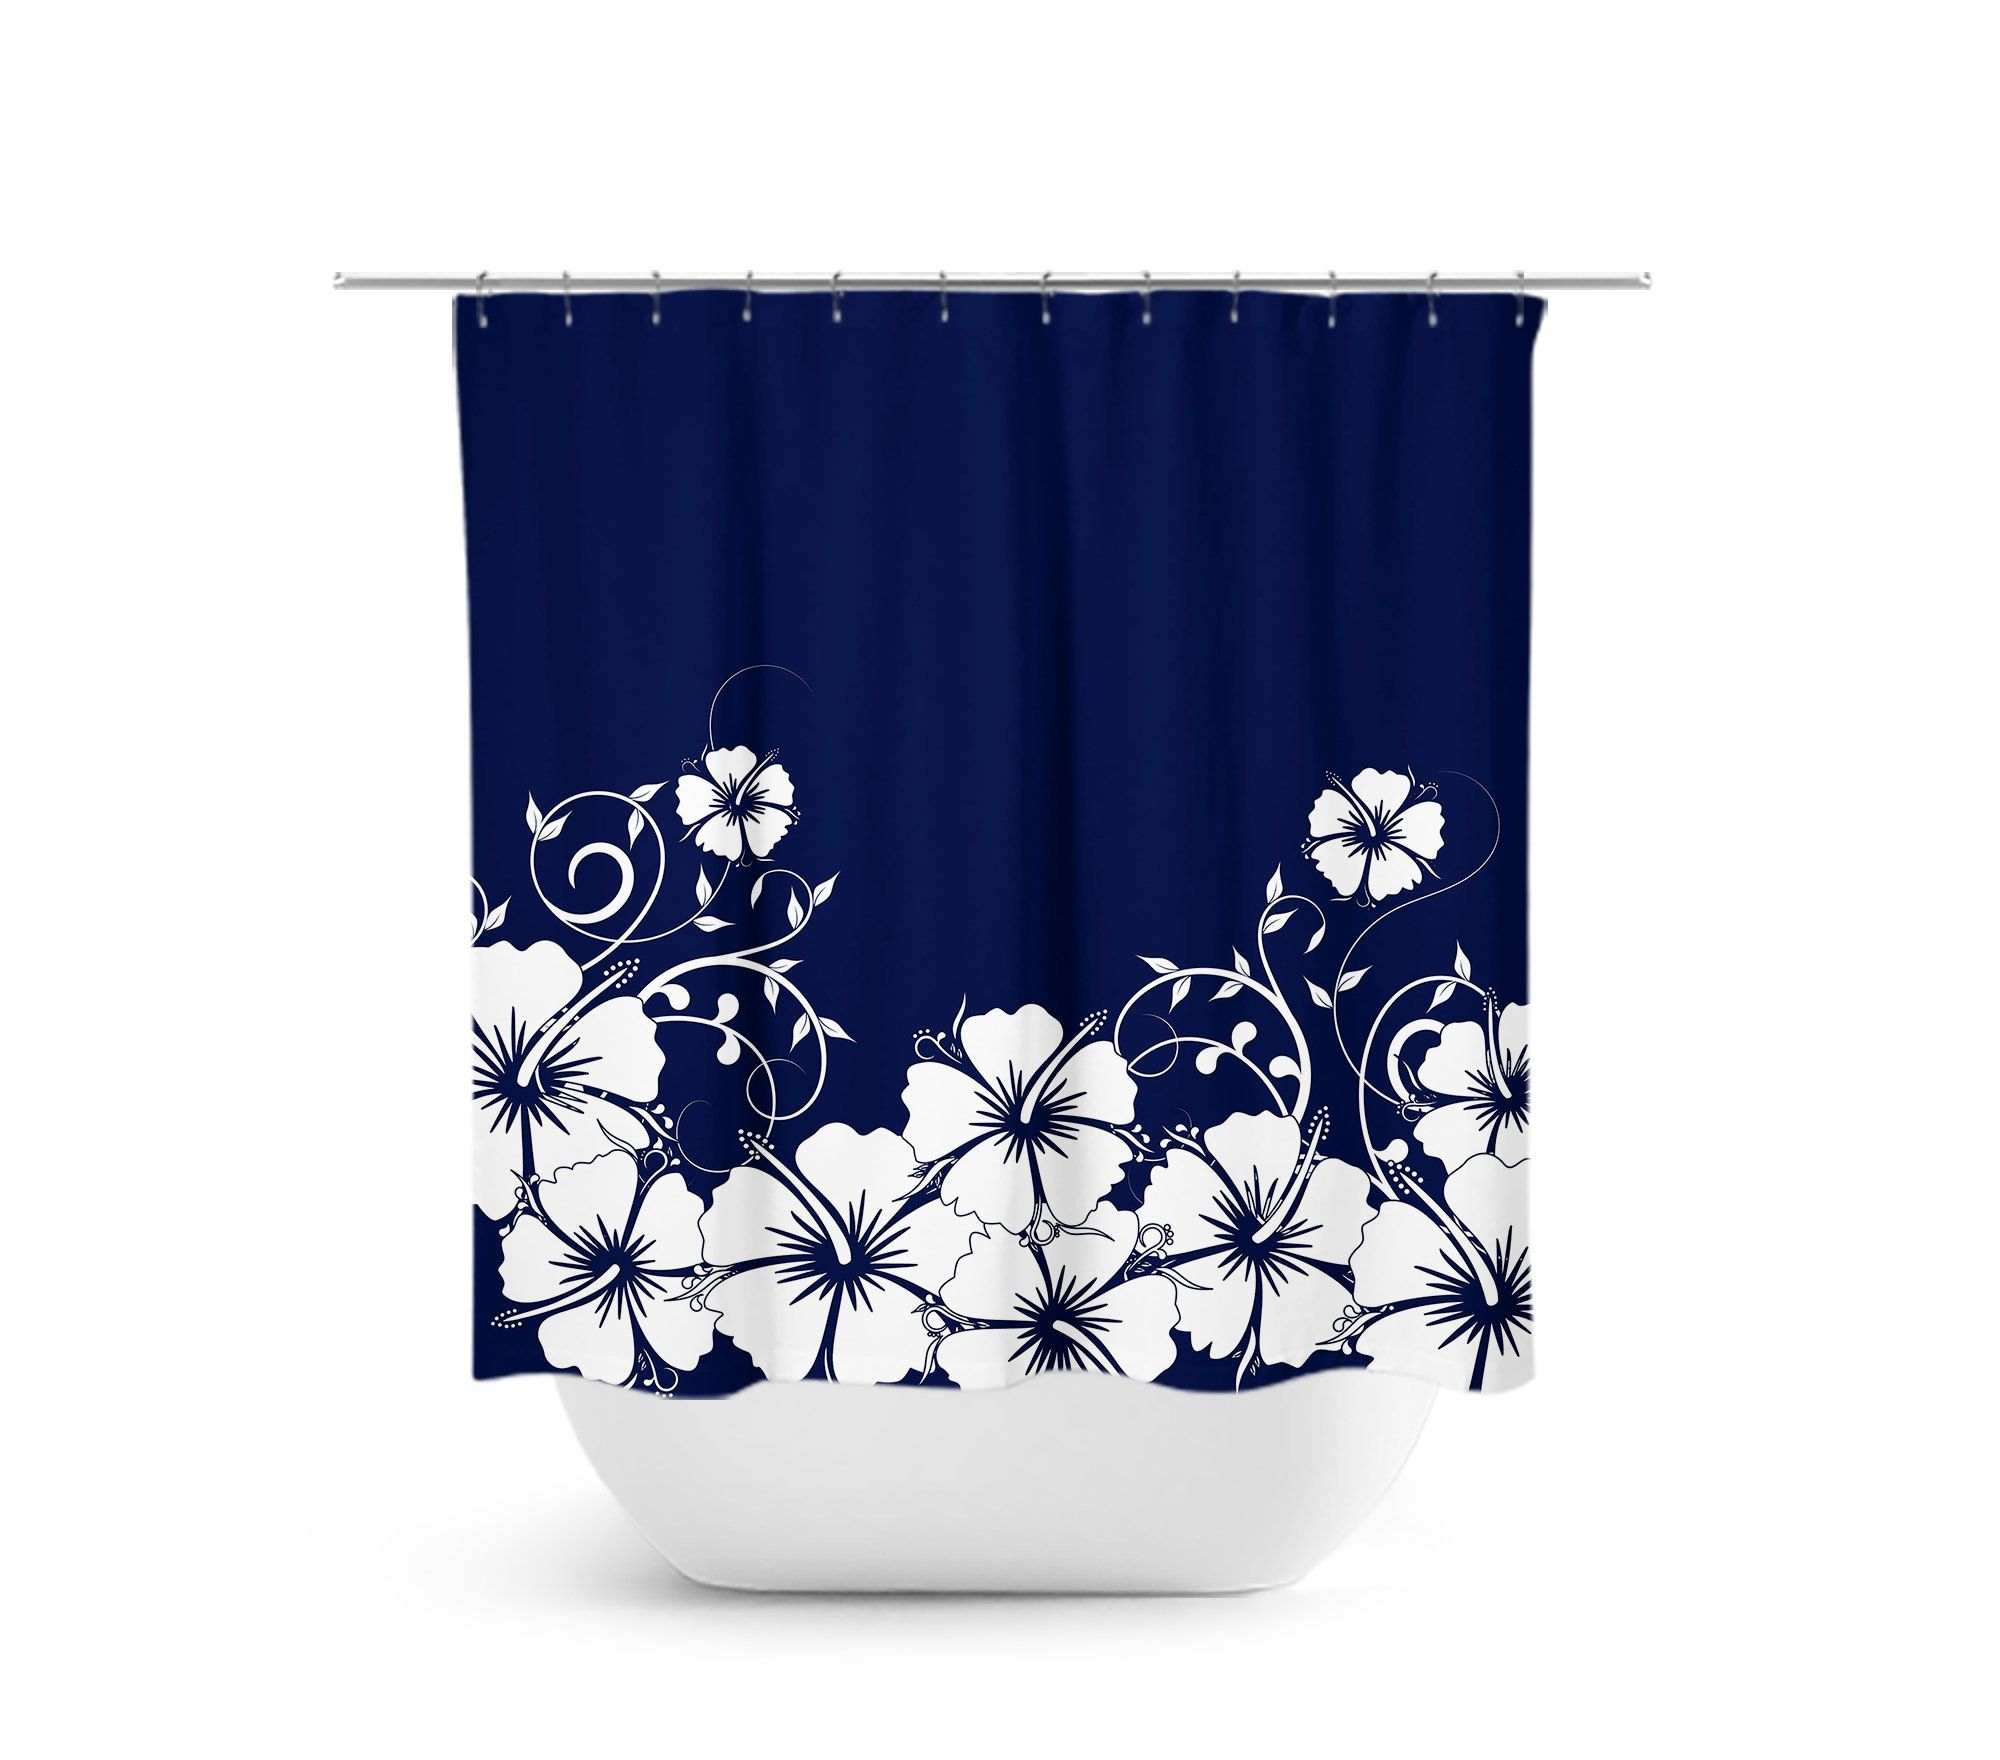 Blue White Shower Curtain Hibiscus Floral Bath Curtain Etsy In 2020 Blue Bathroom Decor Girl Bathroom Decor Blue Apartment Decor